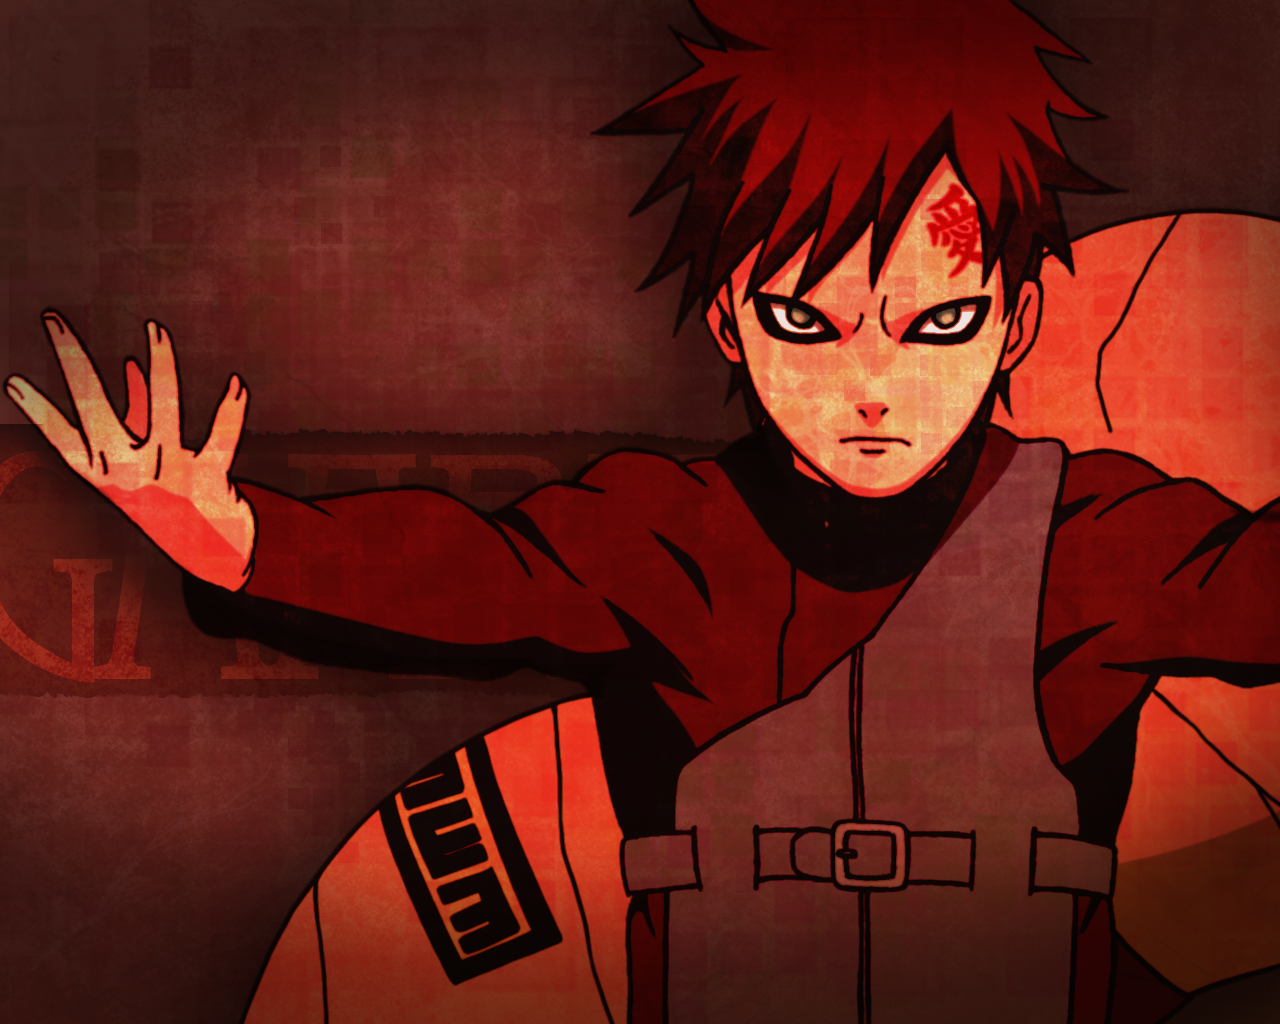 Wallpapers HD: 46 Wallpapers Naruto Shippuden (Parte 2)